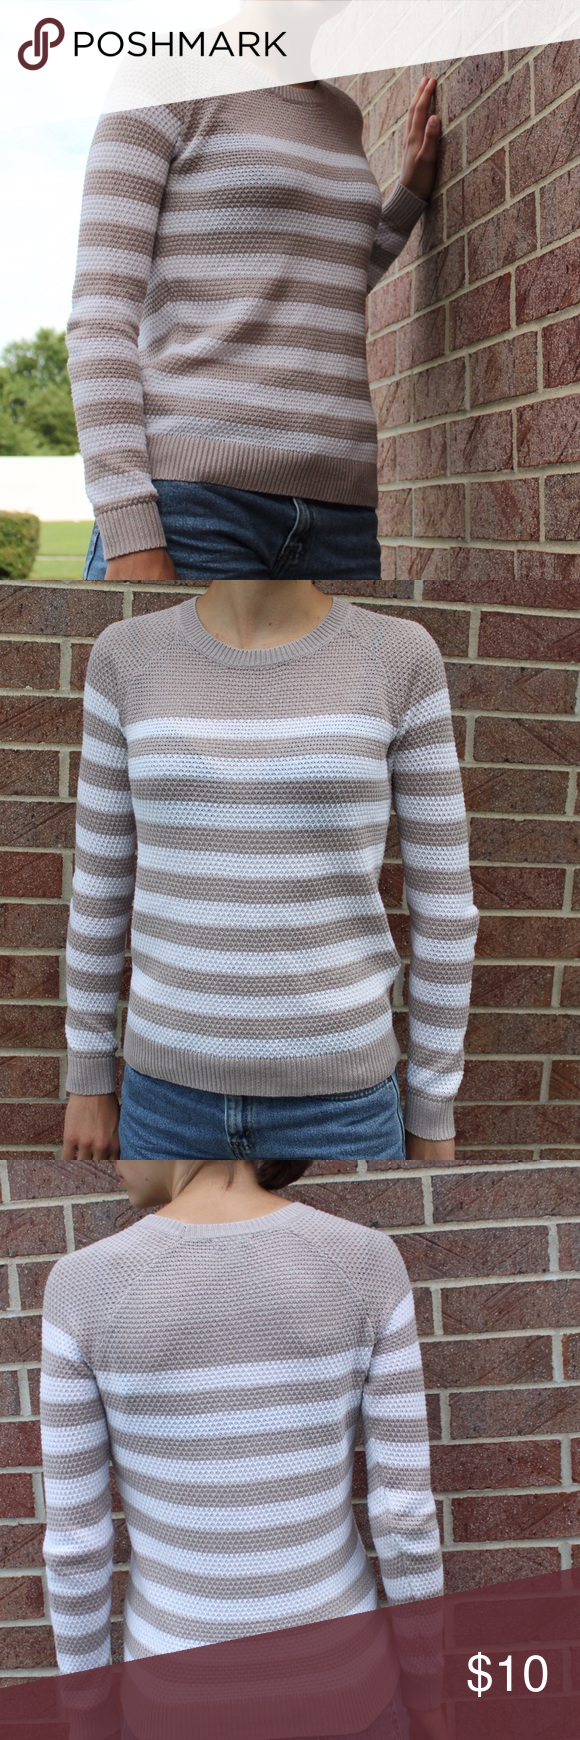 Old Navy Women's Striped Sweater Add this cozy sweater to your ...